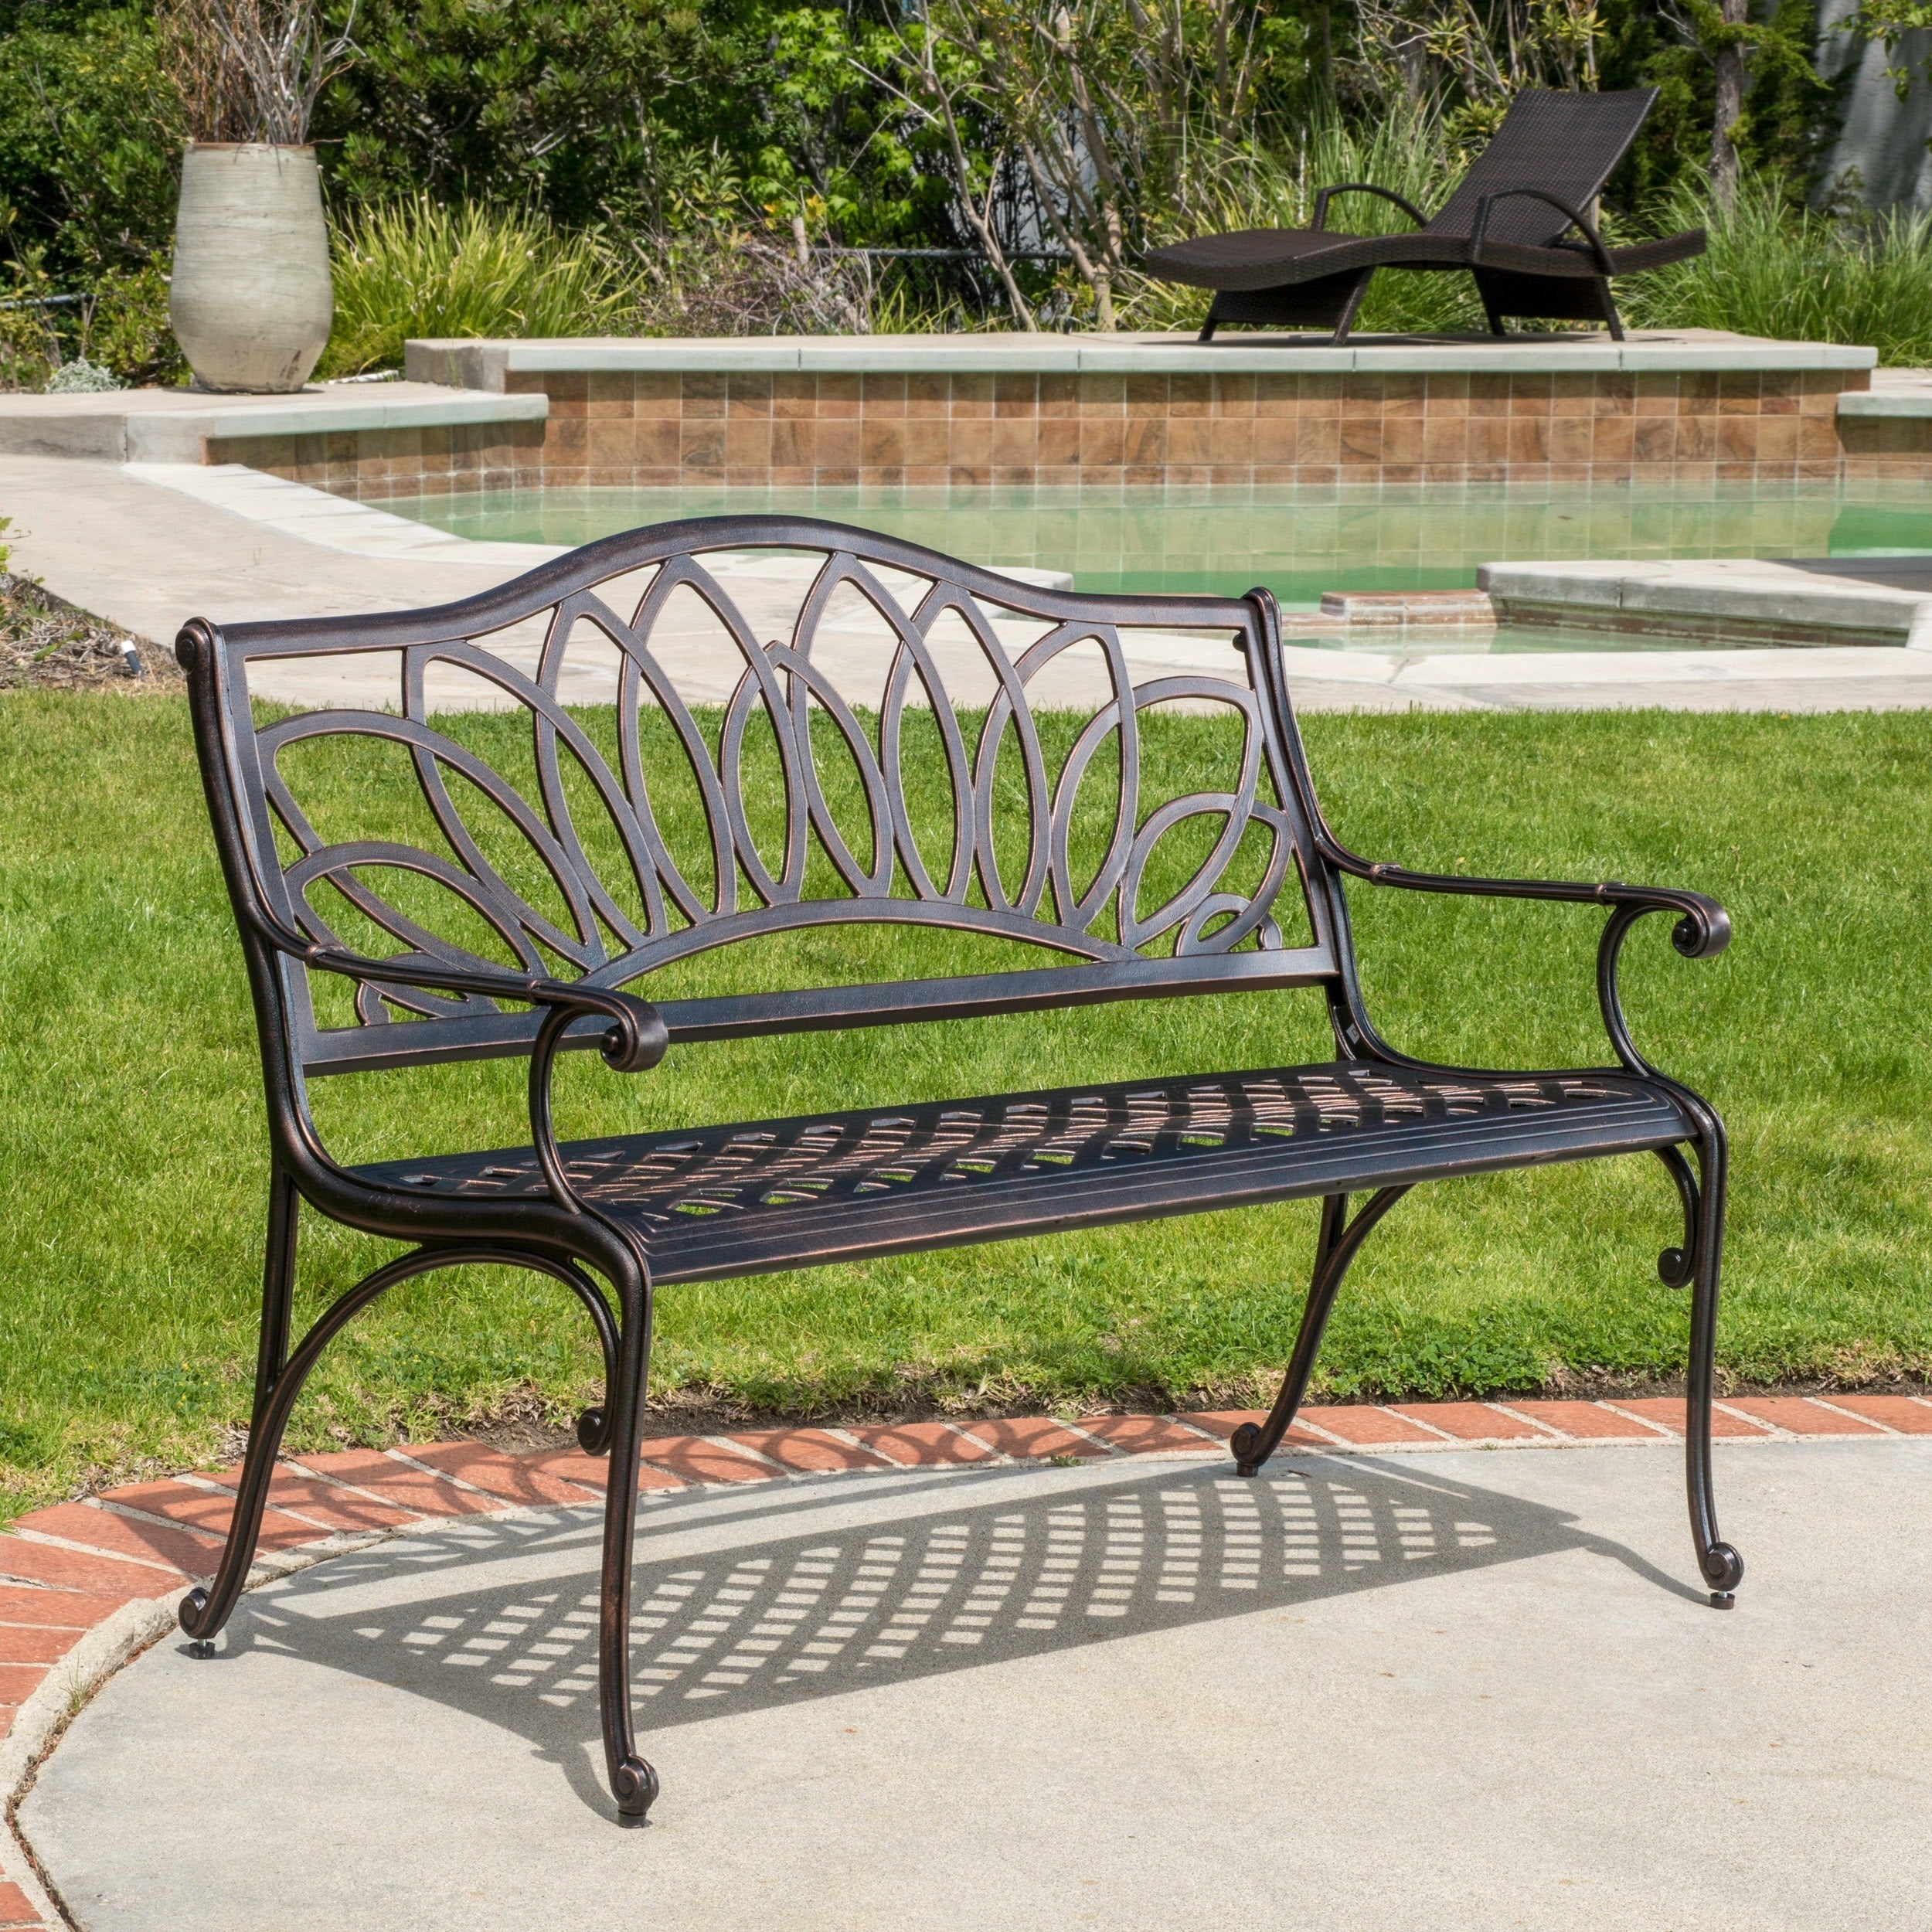 outdoor benches seat modern ideas photo uk wrought outside plans bench patio vintage of furn metal designs garden gliders full ebay contemporary size backyard furniture iron